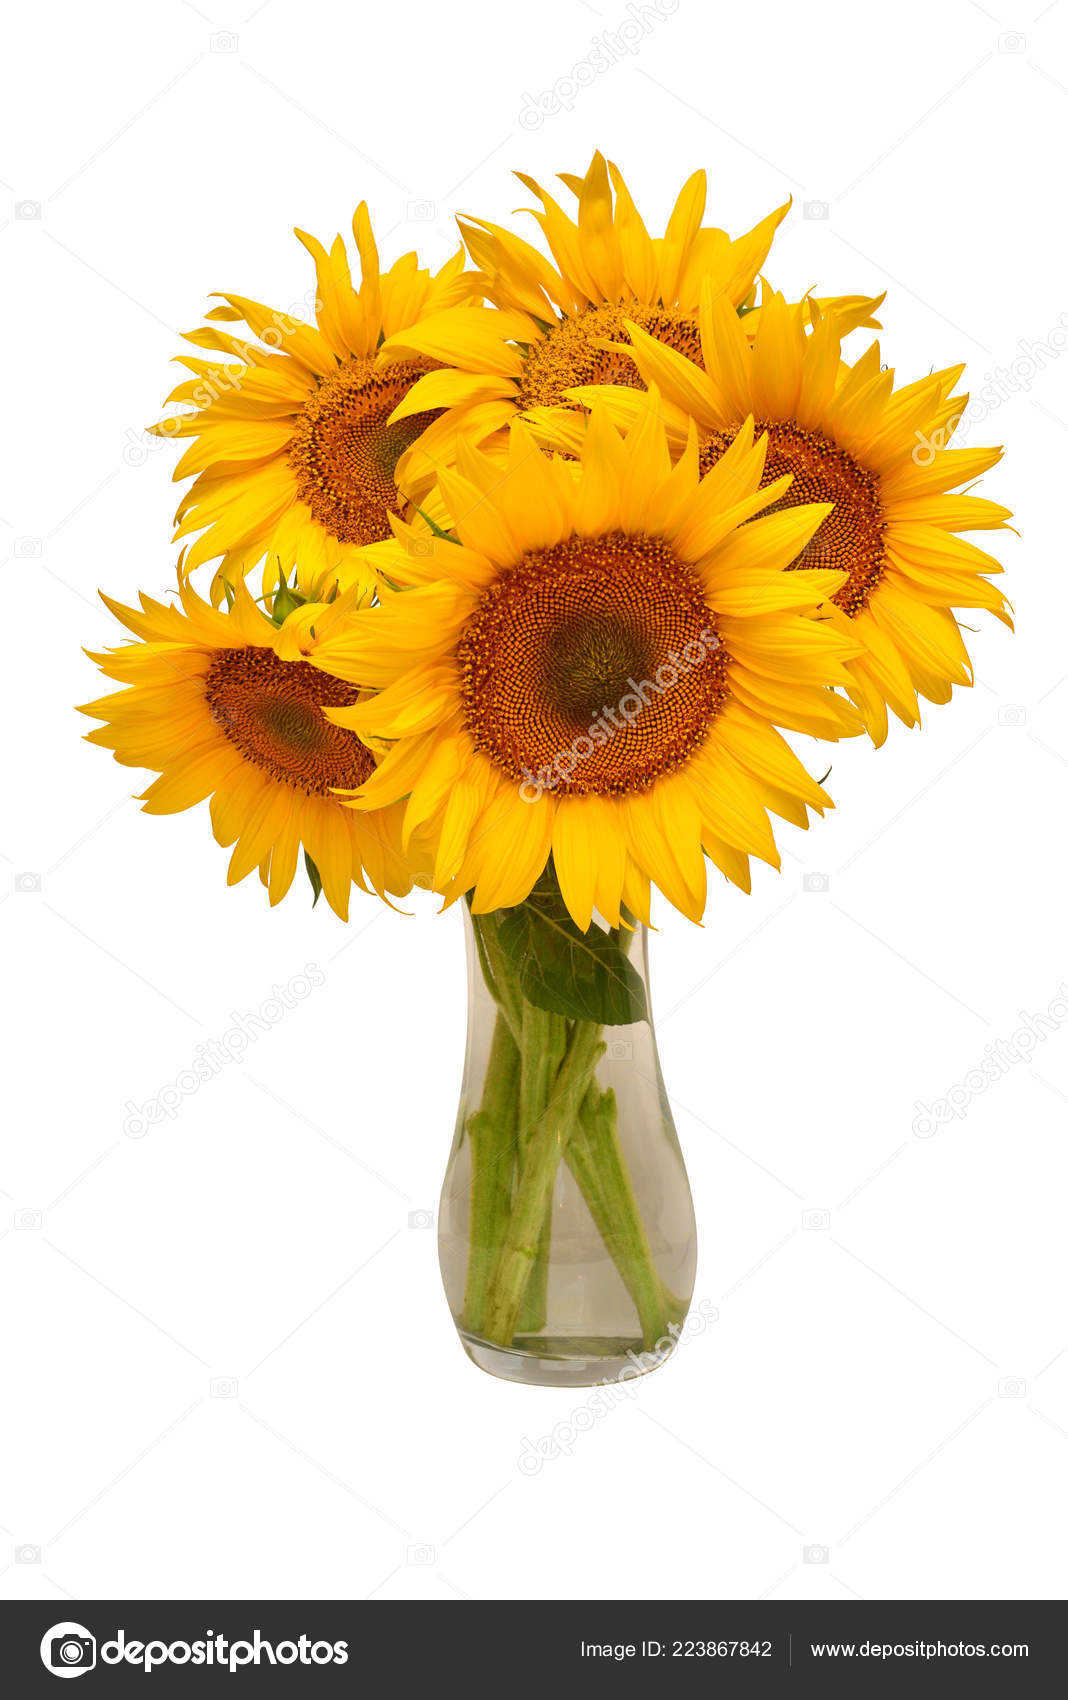 Vase Flower Arrangement Ideas Creative Still Life Idea Flowers Sunflower Bouquet Glass Vase Isolated Stock Photo C Ian 2010 223867842